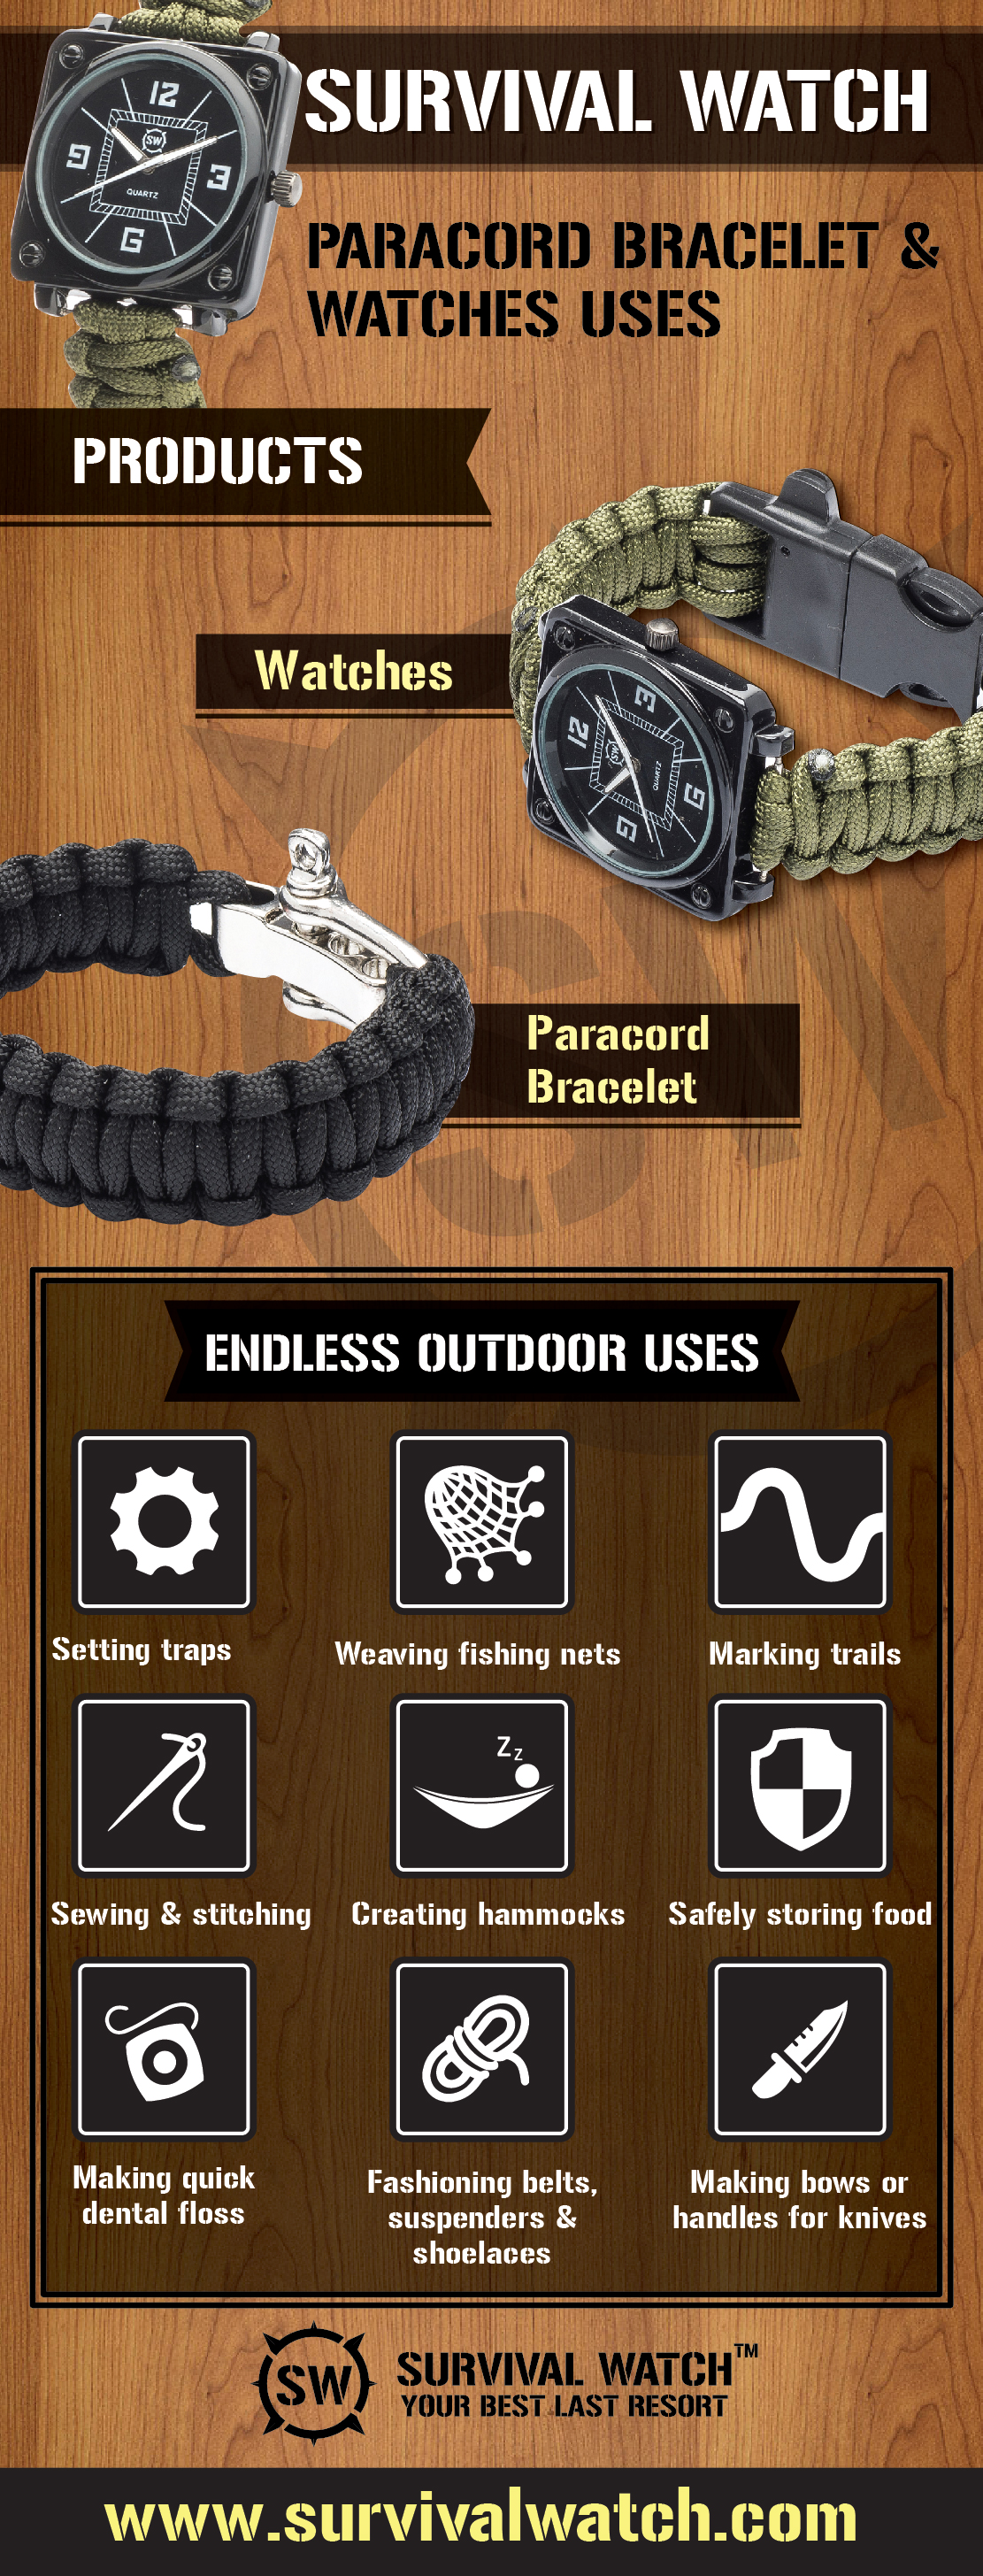 Survivalwatch Uses Of Paracord Survival Bracelets Watches Visual Ly